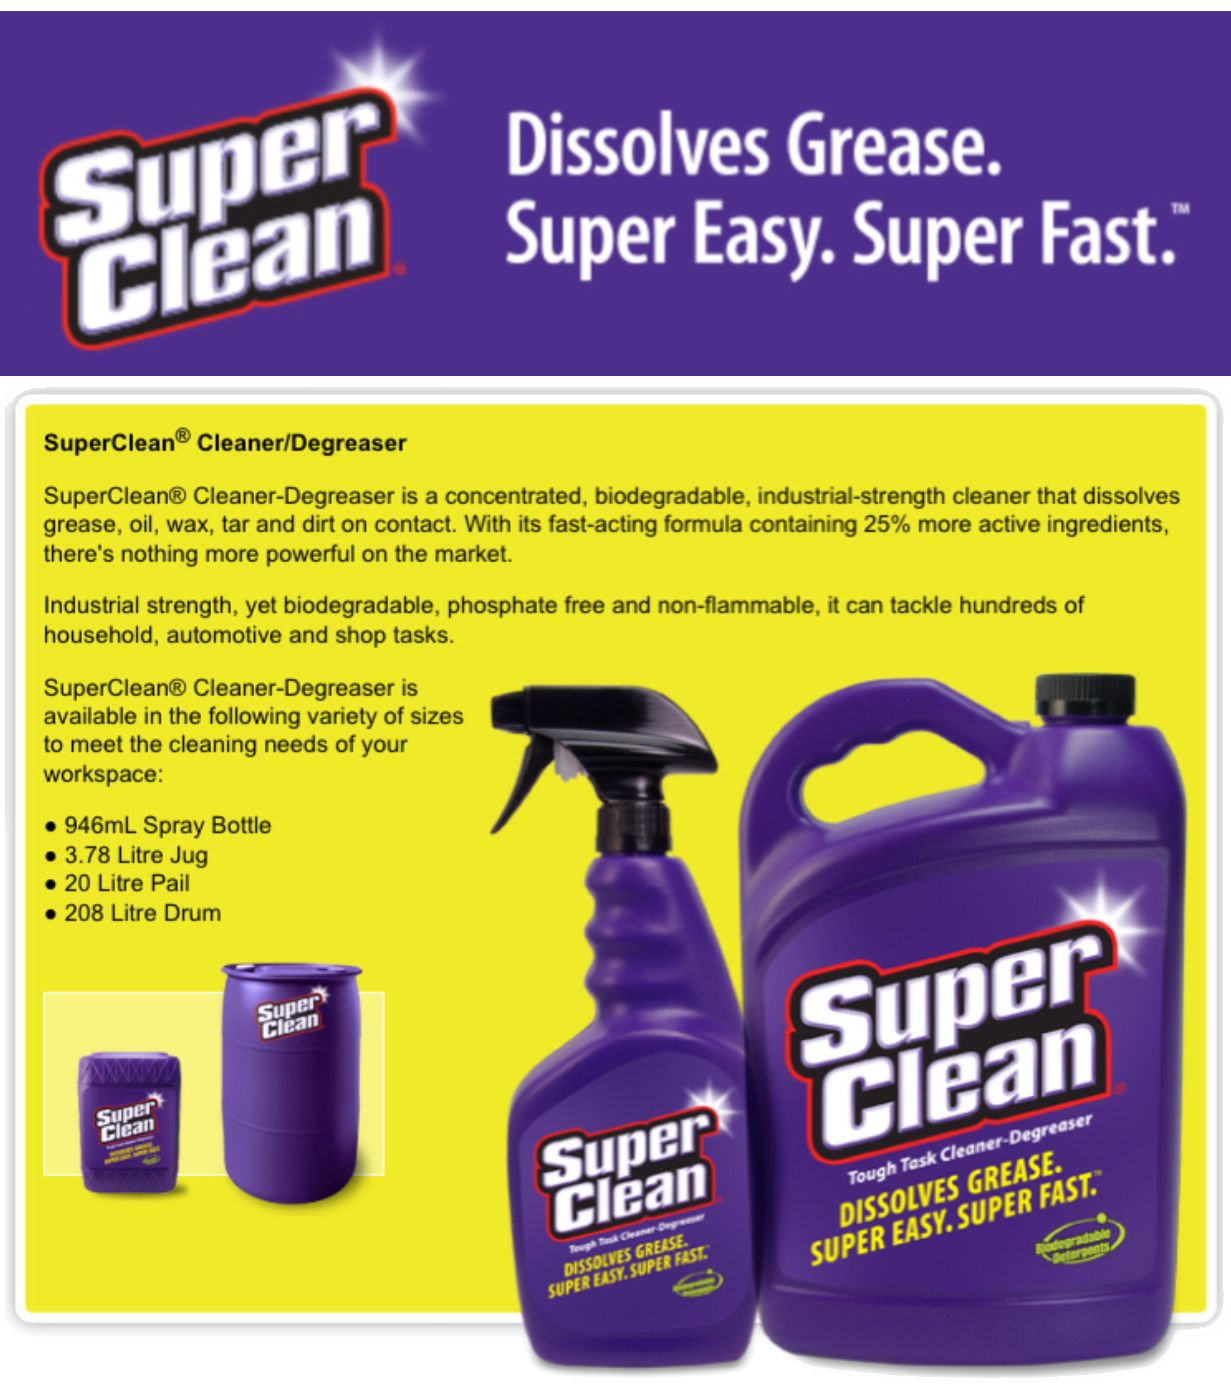 SuperClean® Cleaner-Degreaser is a concentrated, biodegradable